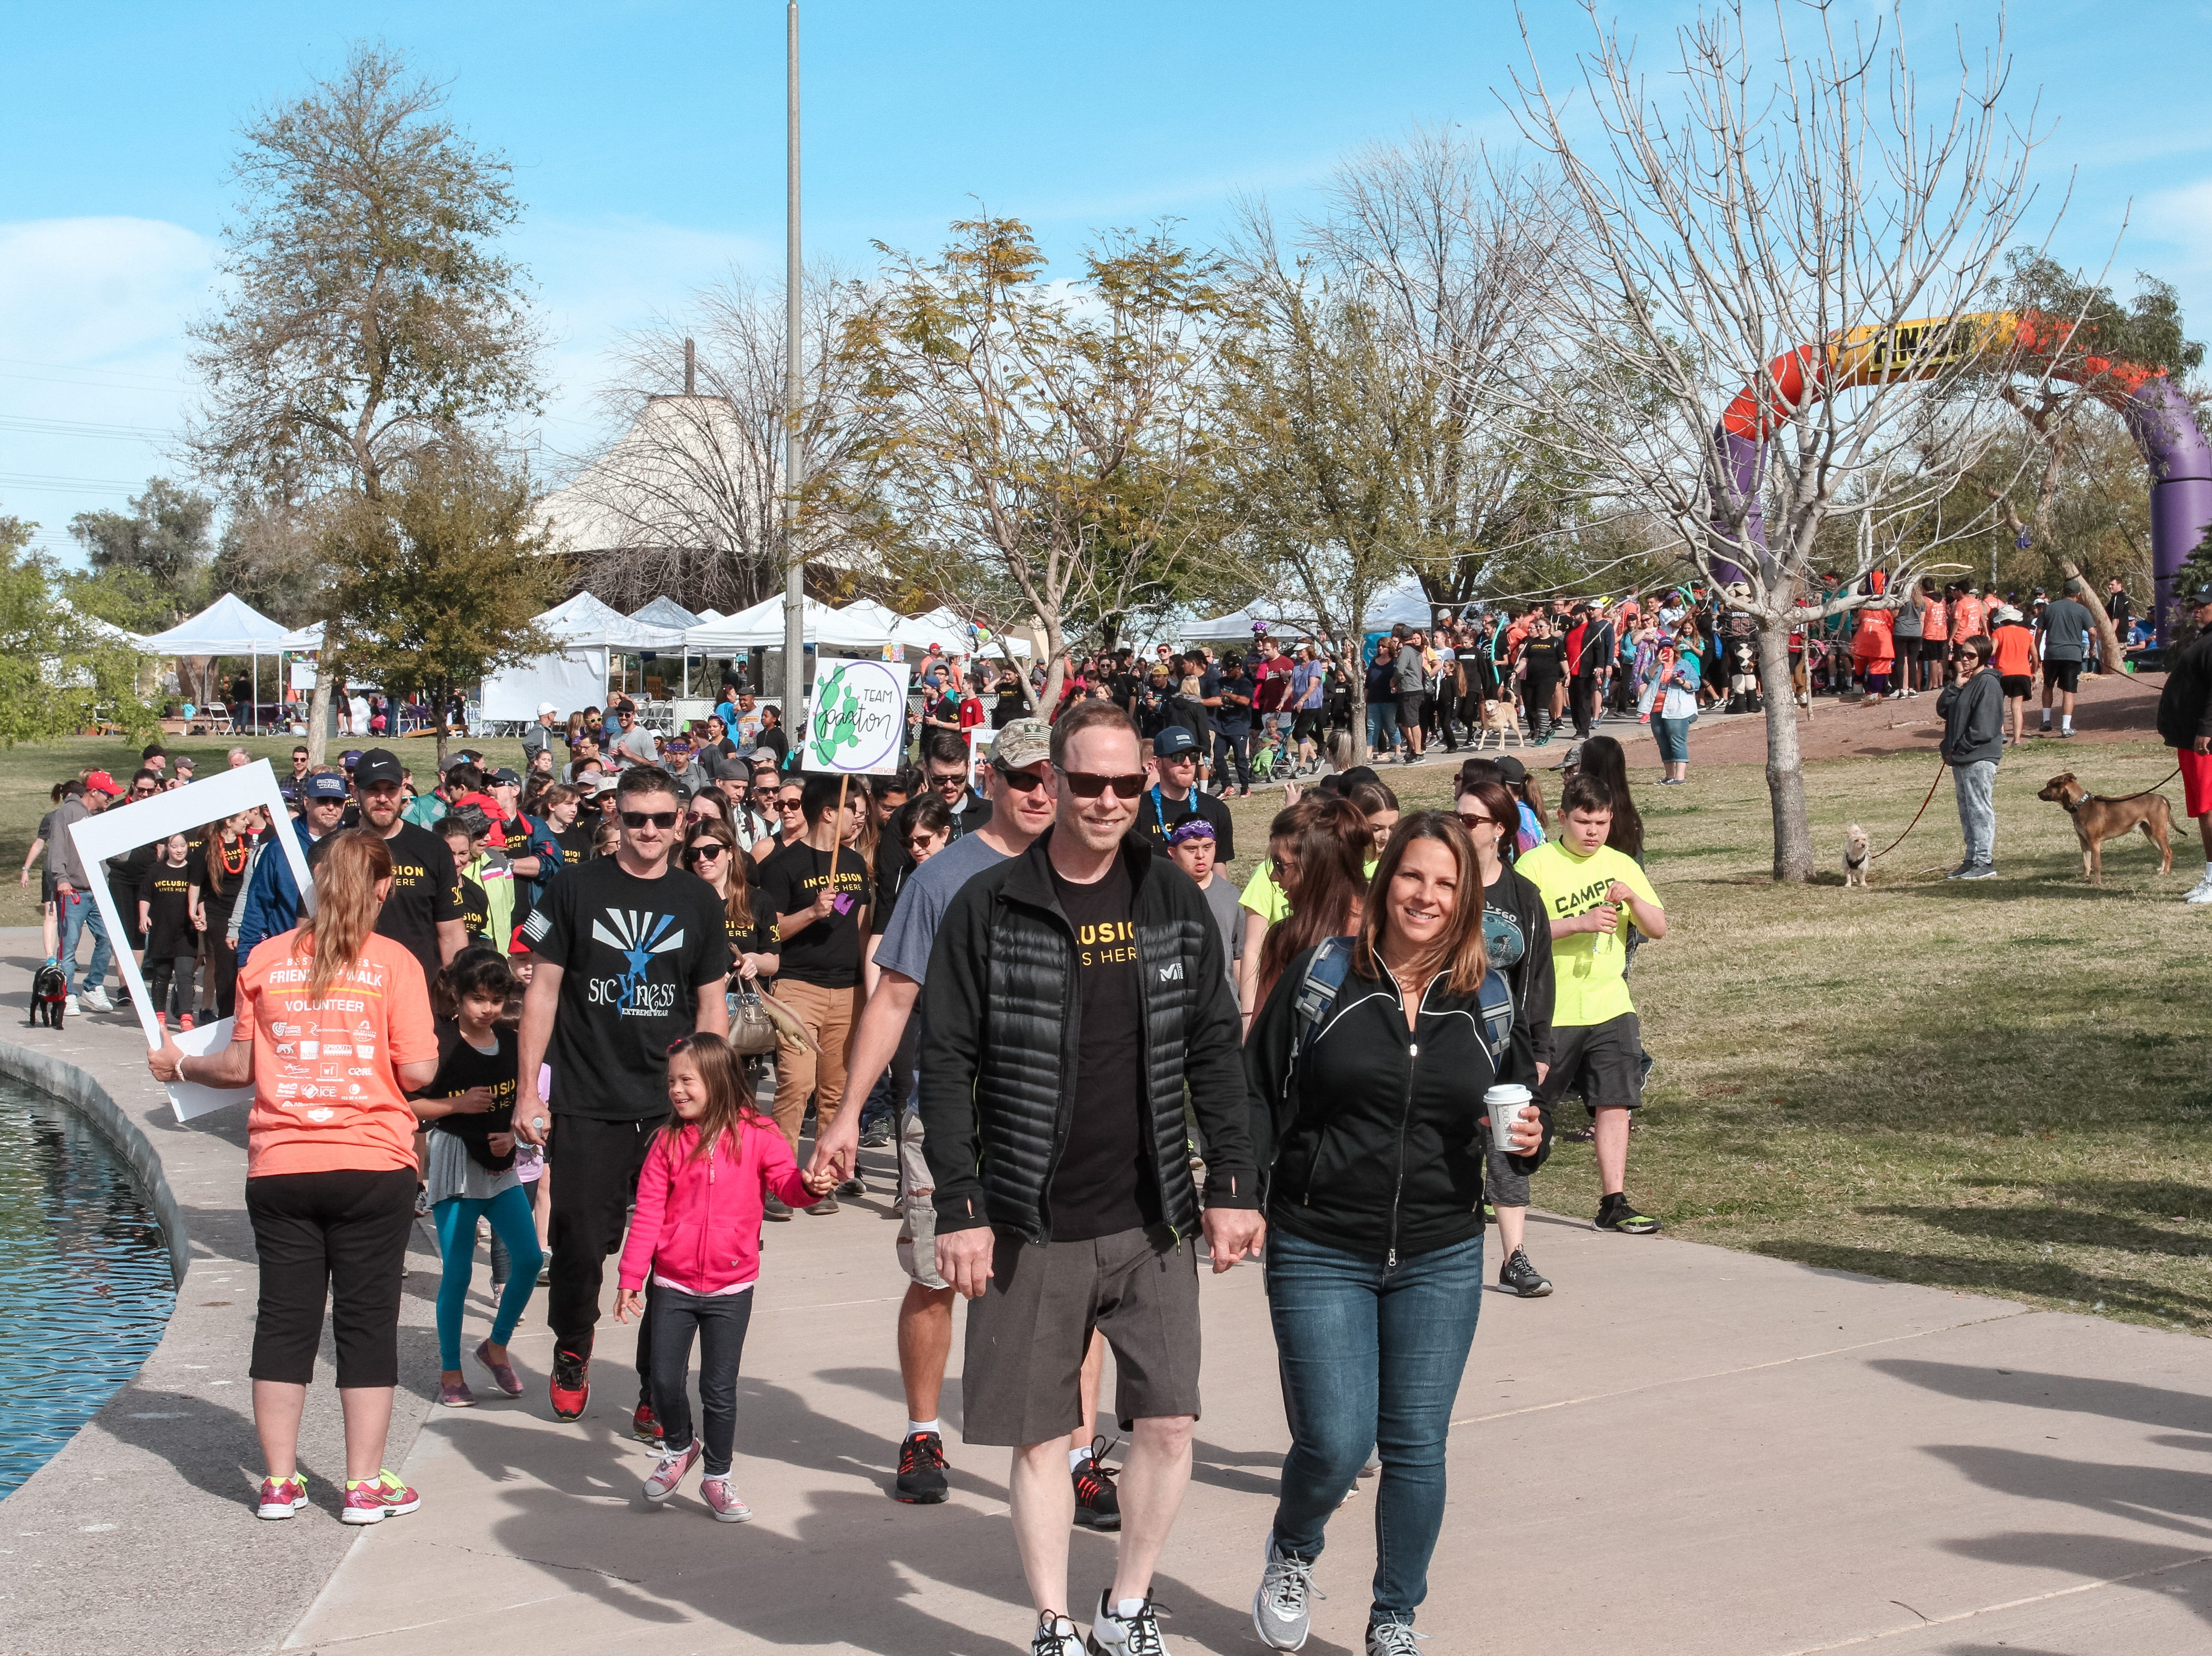 Participants walk at The Best Buddies Friendship Walk at Kiwanis Park in Tempe on March 23, 2019.